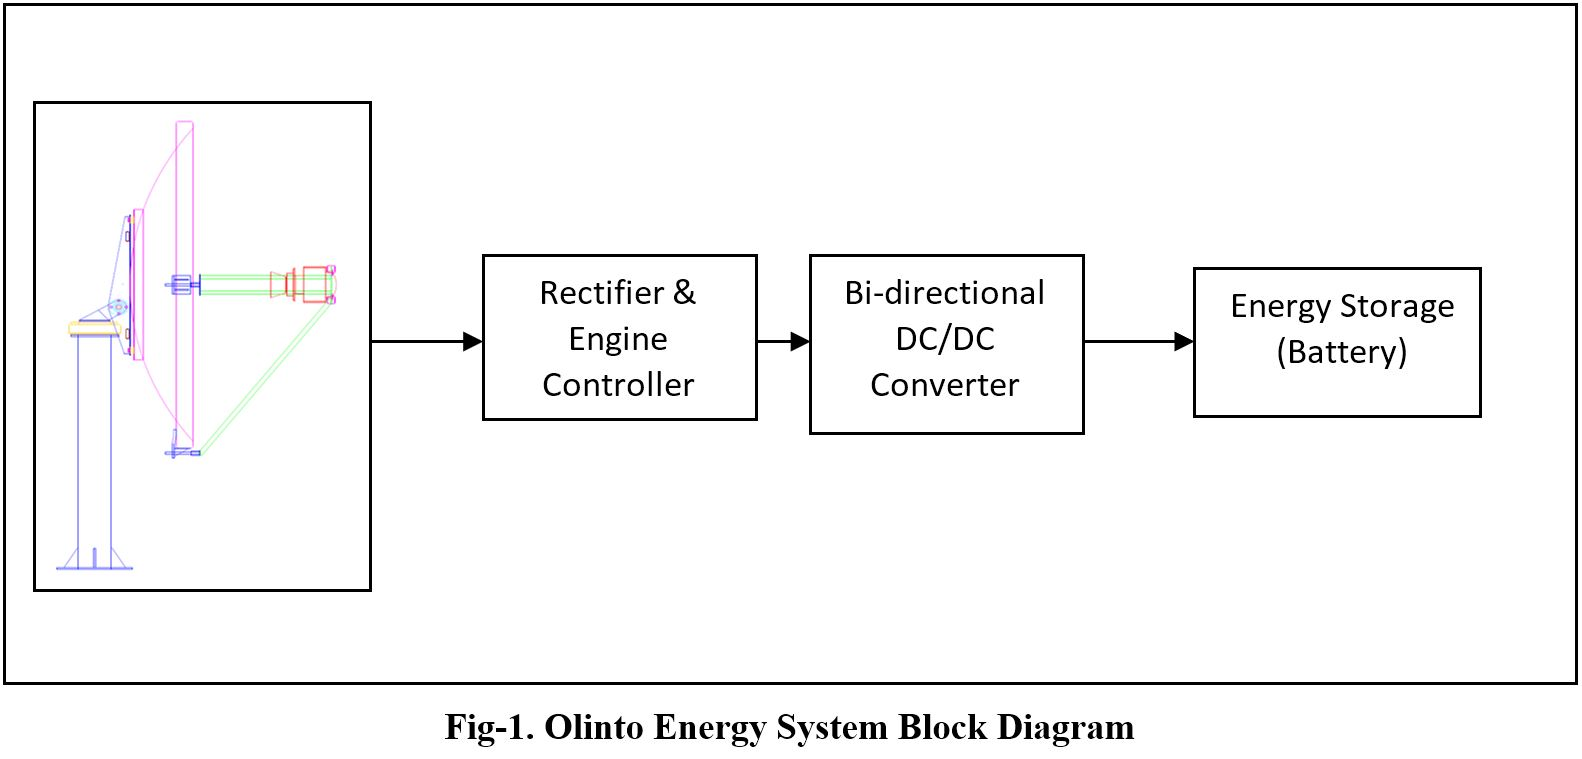 Olinto Energy System With Dual Axis Active Chronological Traker Off Heat Engine Block Diagram A Suitable Control Is Developed Such That There Stable Operation Of Generation And Storage Figure 1 Shows The